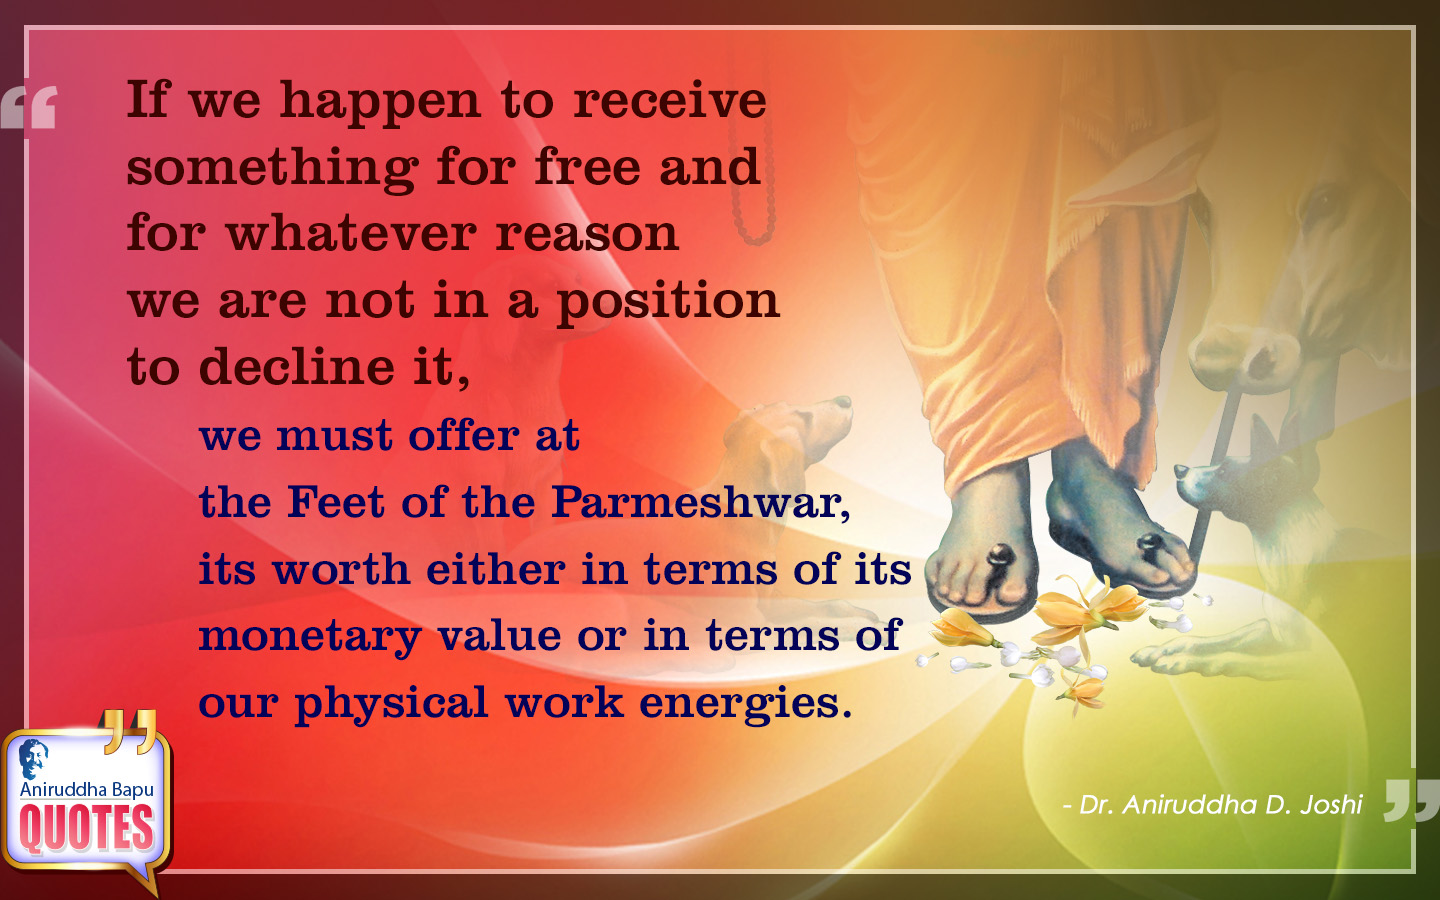 home aniruddha bapu quotes quote by dr aniruddha joshi aniruddha bapu on work value in photo large size